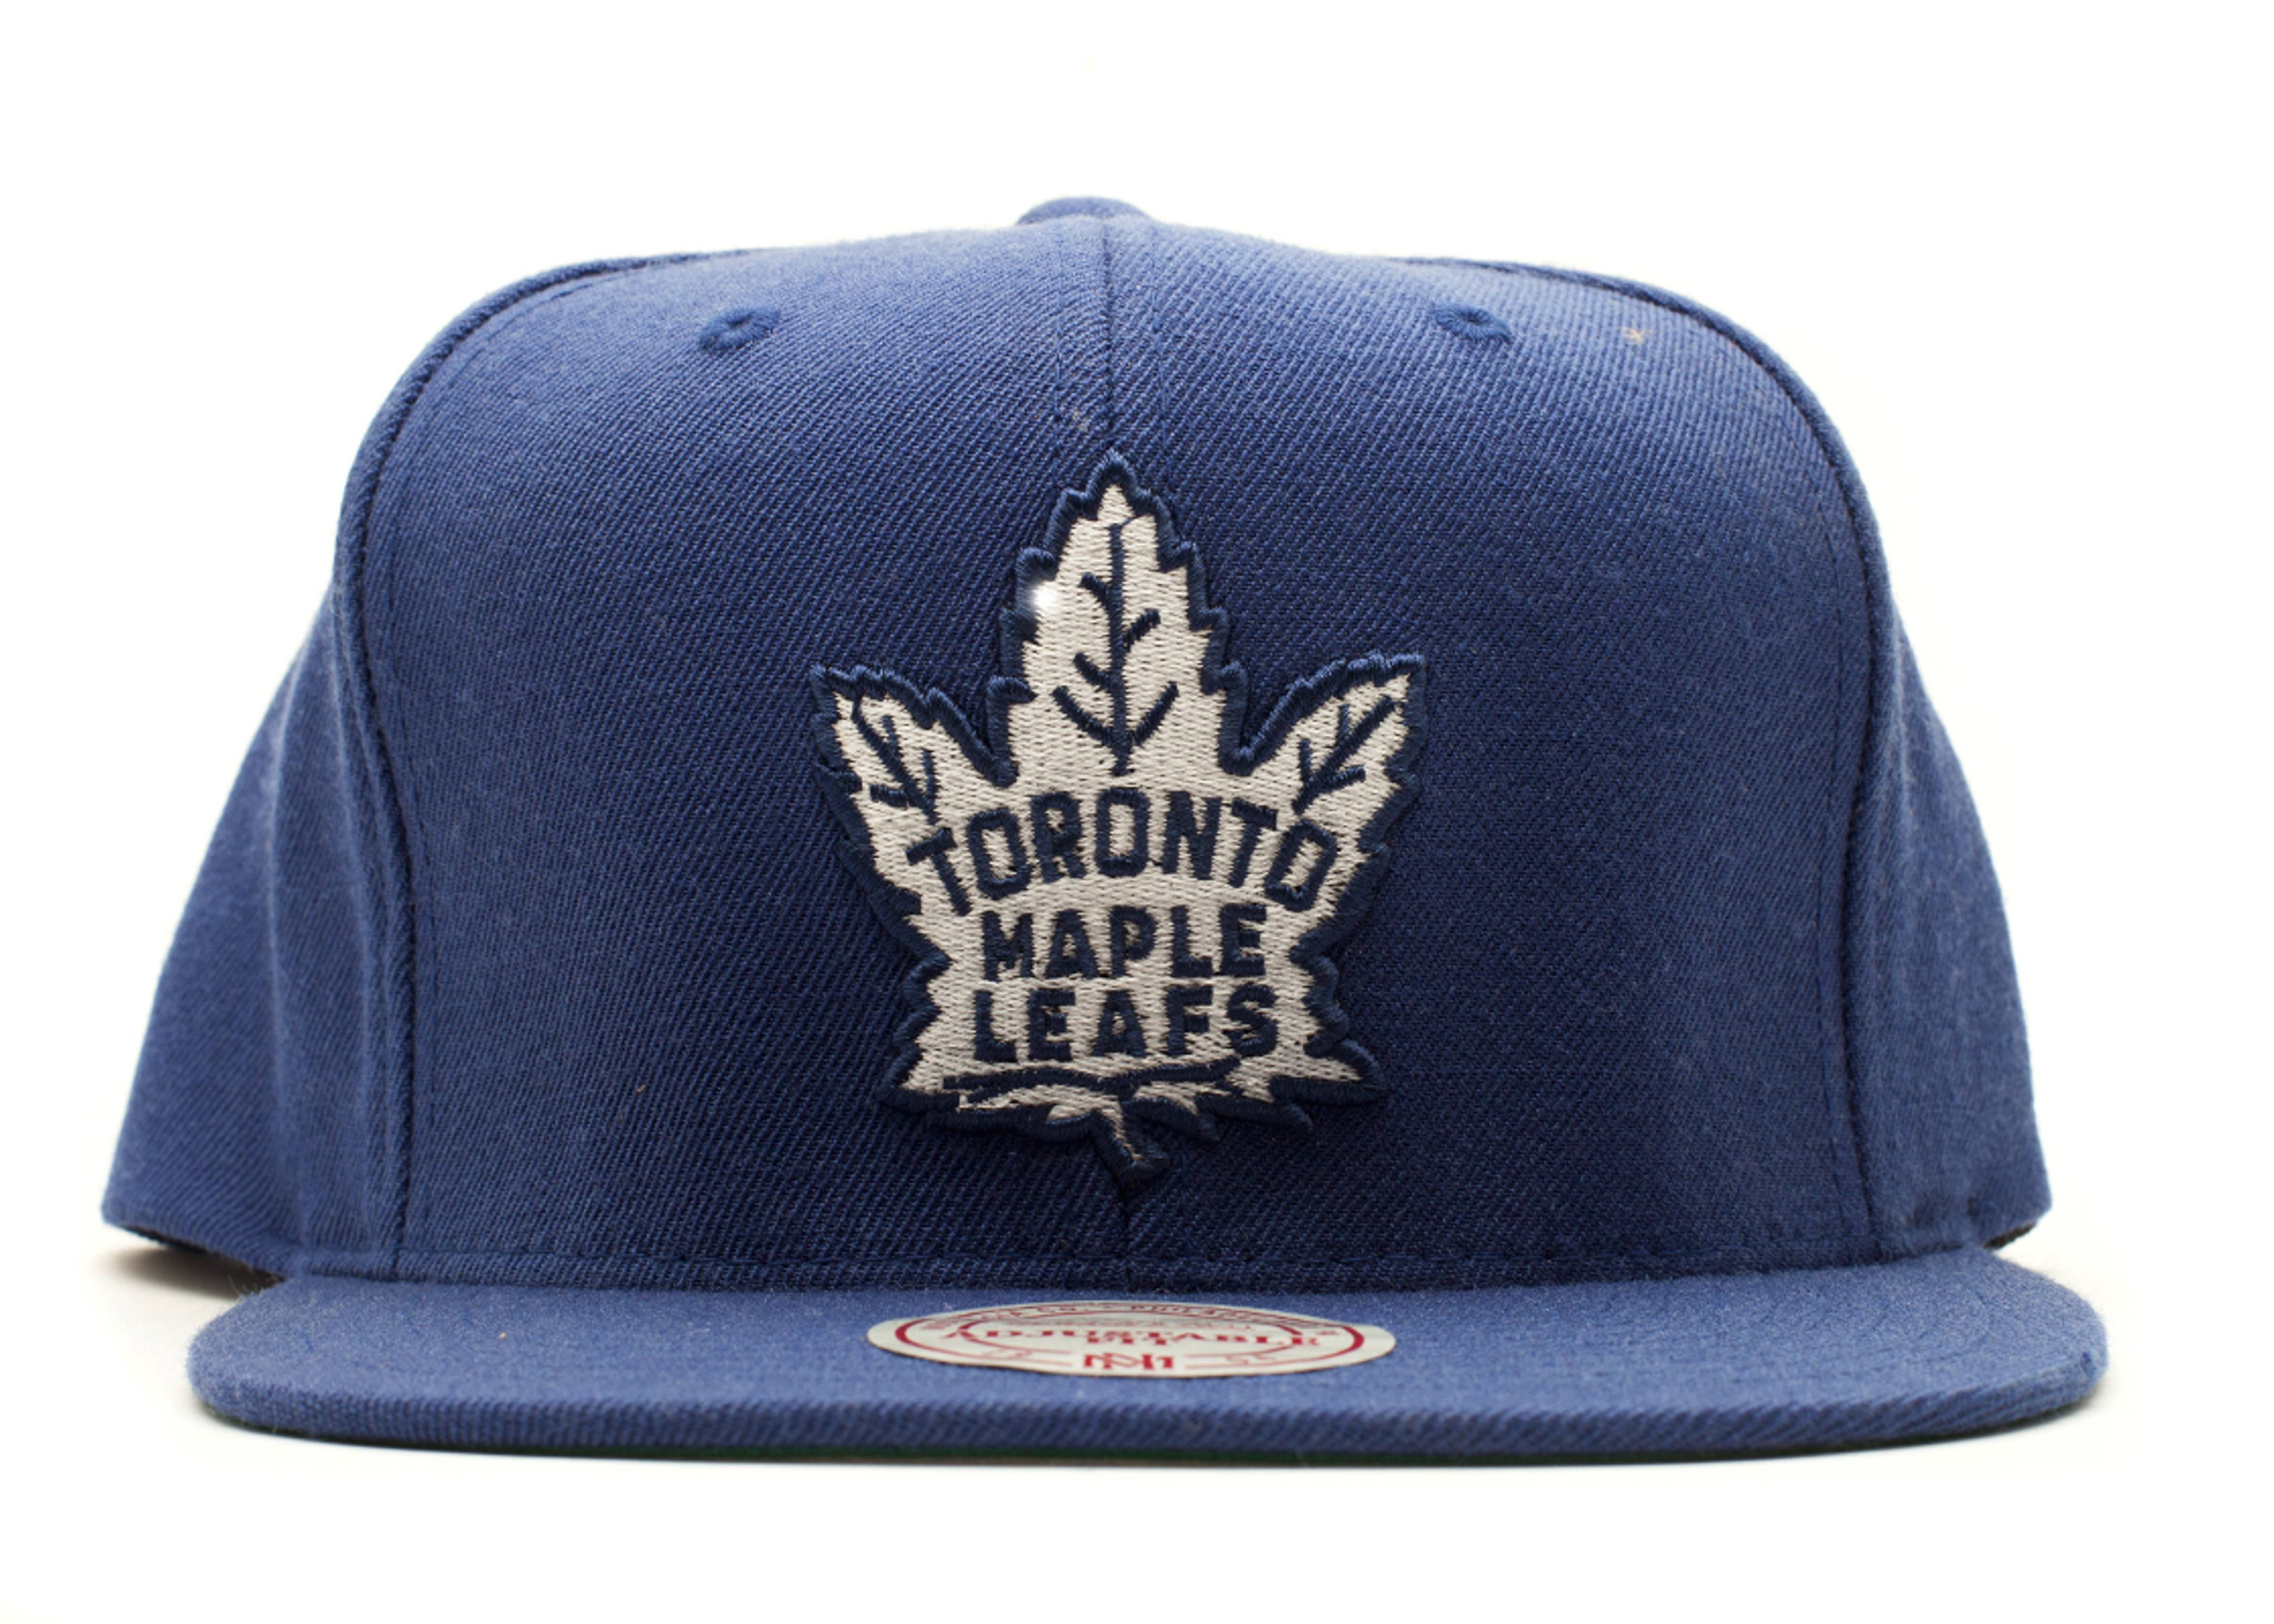 toronto maple leafs snap-back